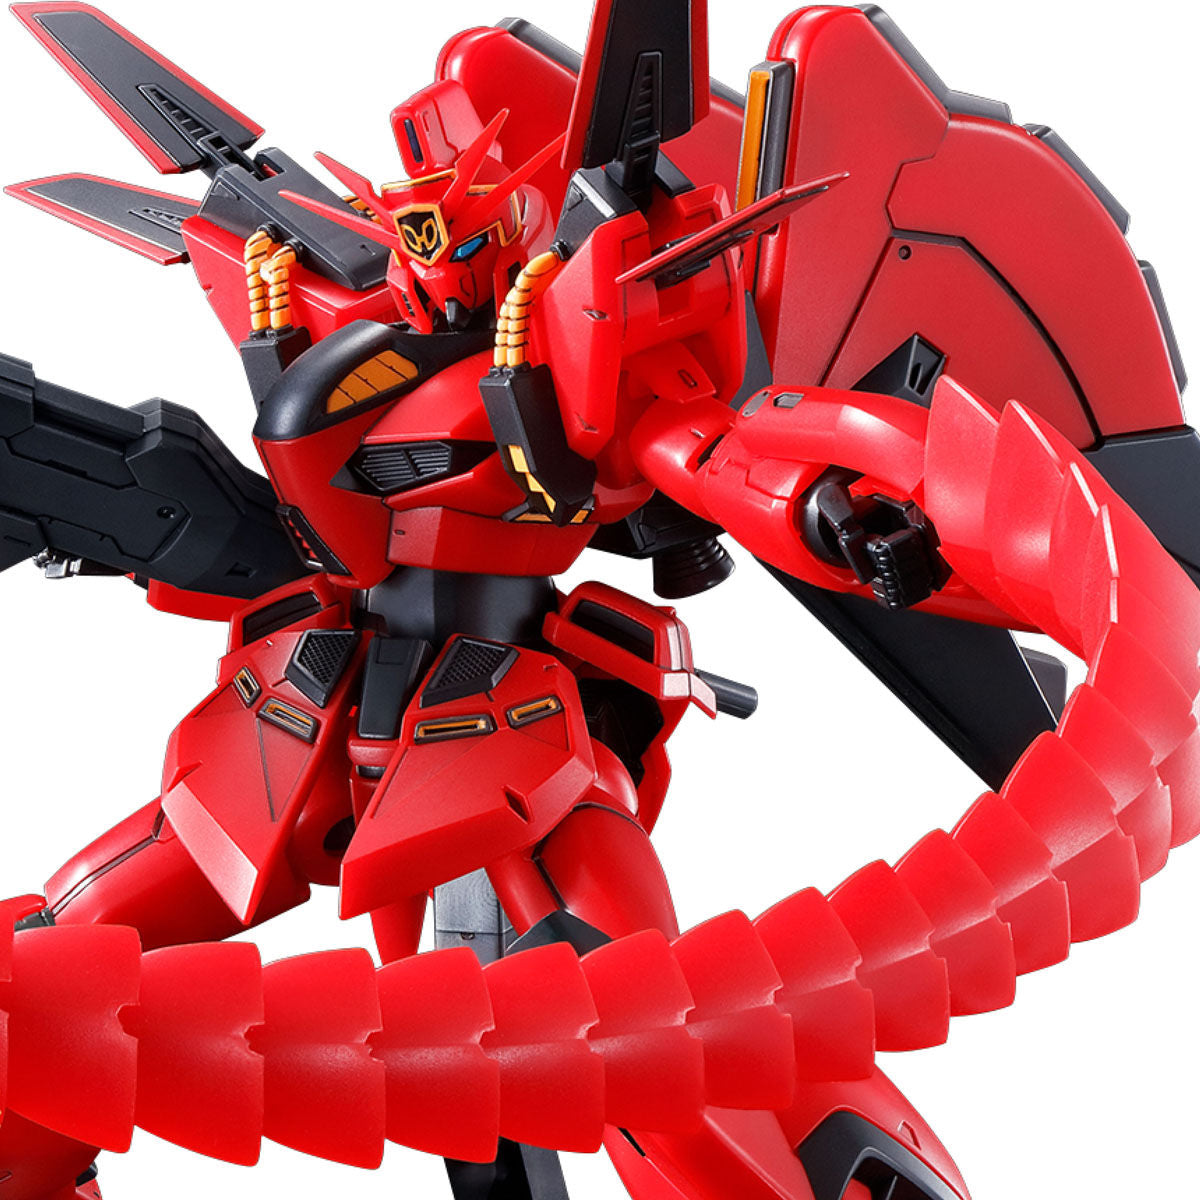 P-BANDAI: RE/100 1/100 VIGNA-GHINA II JUPITER BATTLER VER. [End of APRIL 2021]